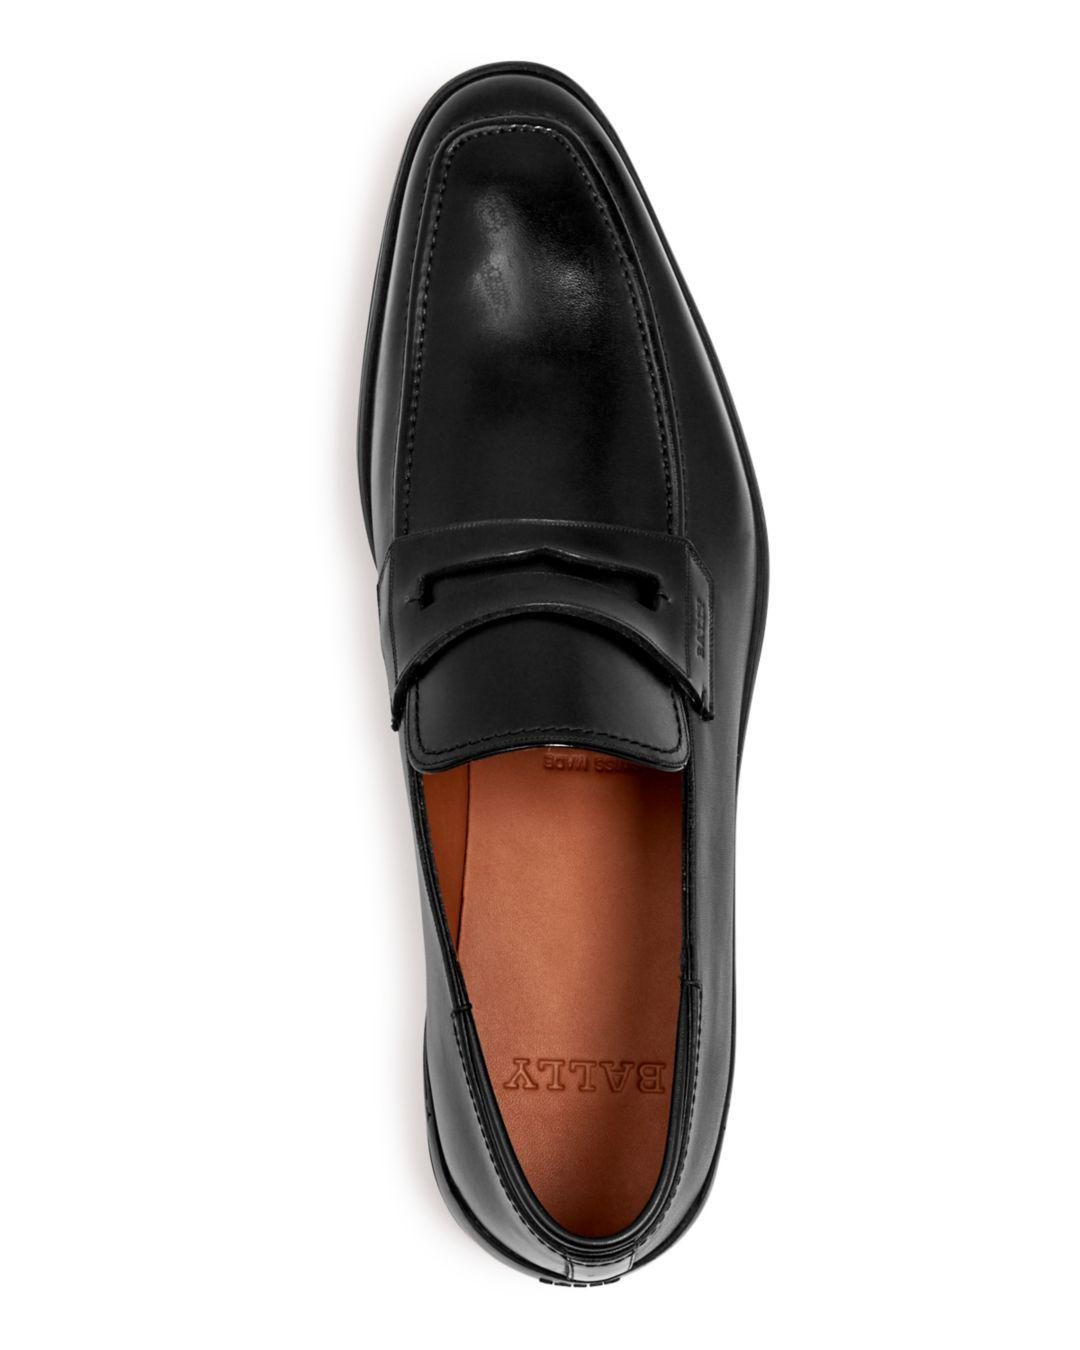 4bce7cb5aab Lyst - Bally Men s Relon Leather Apron-toe Penny Loafers in Black for Men